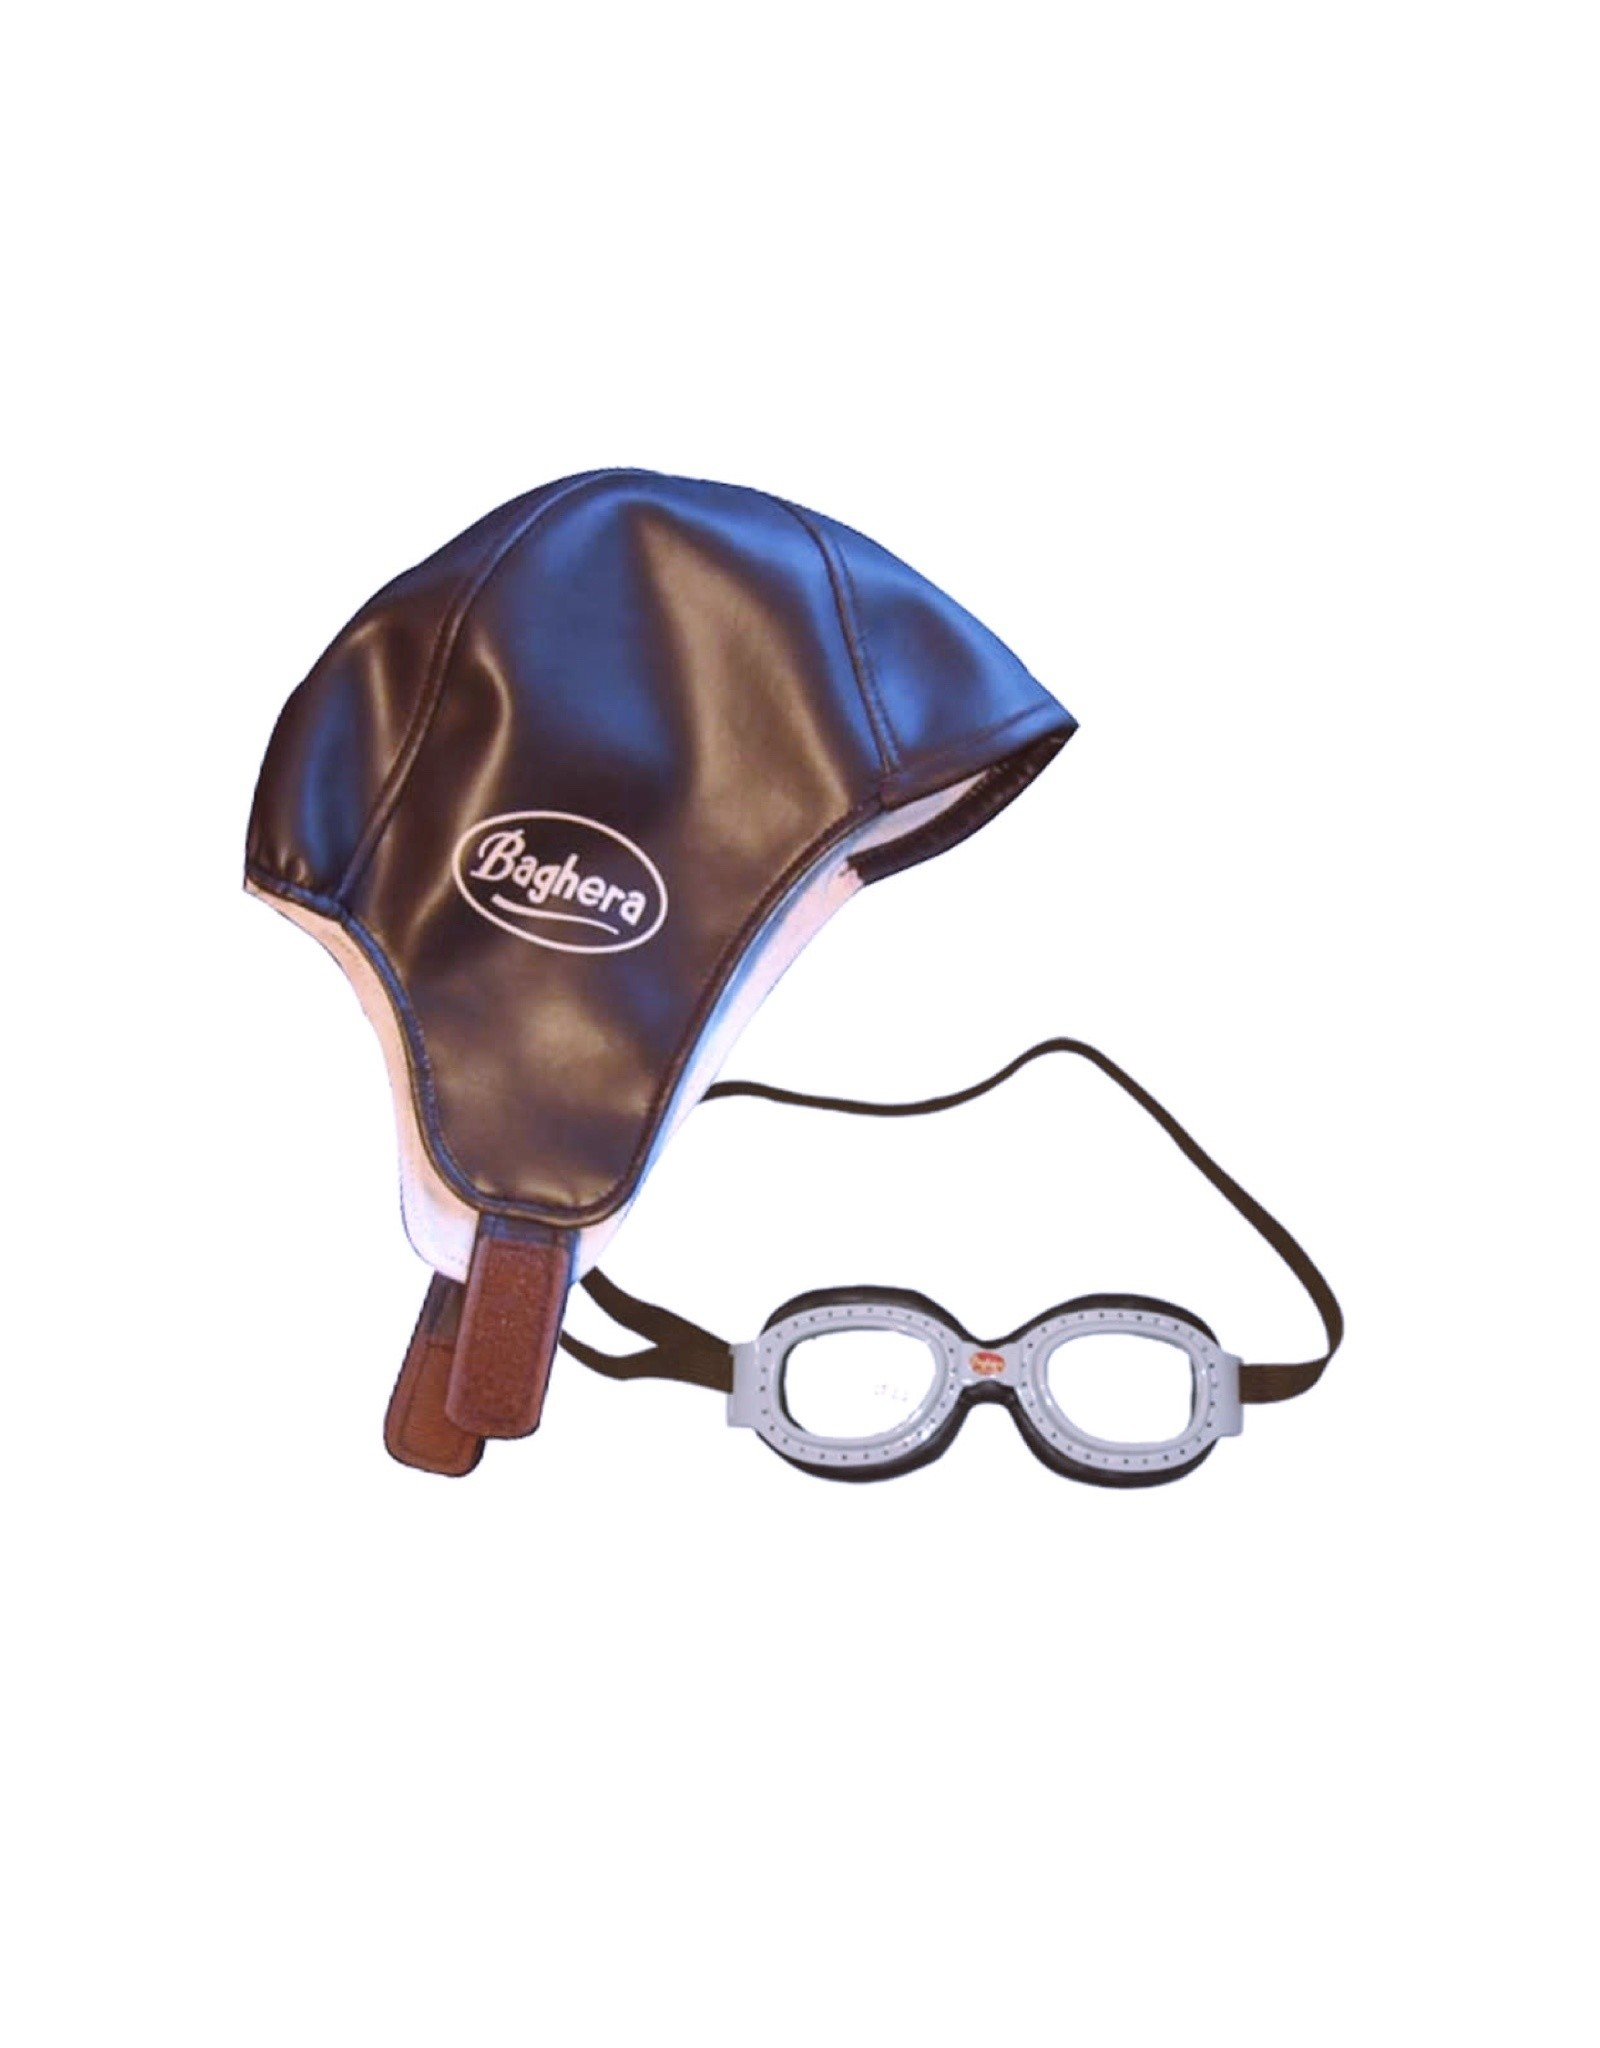 Playforever Playforever Vintage Racing Cap and Goggles